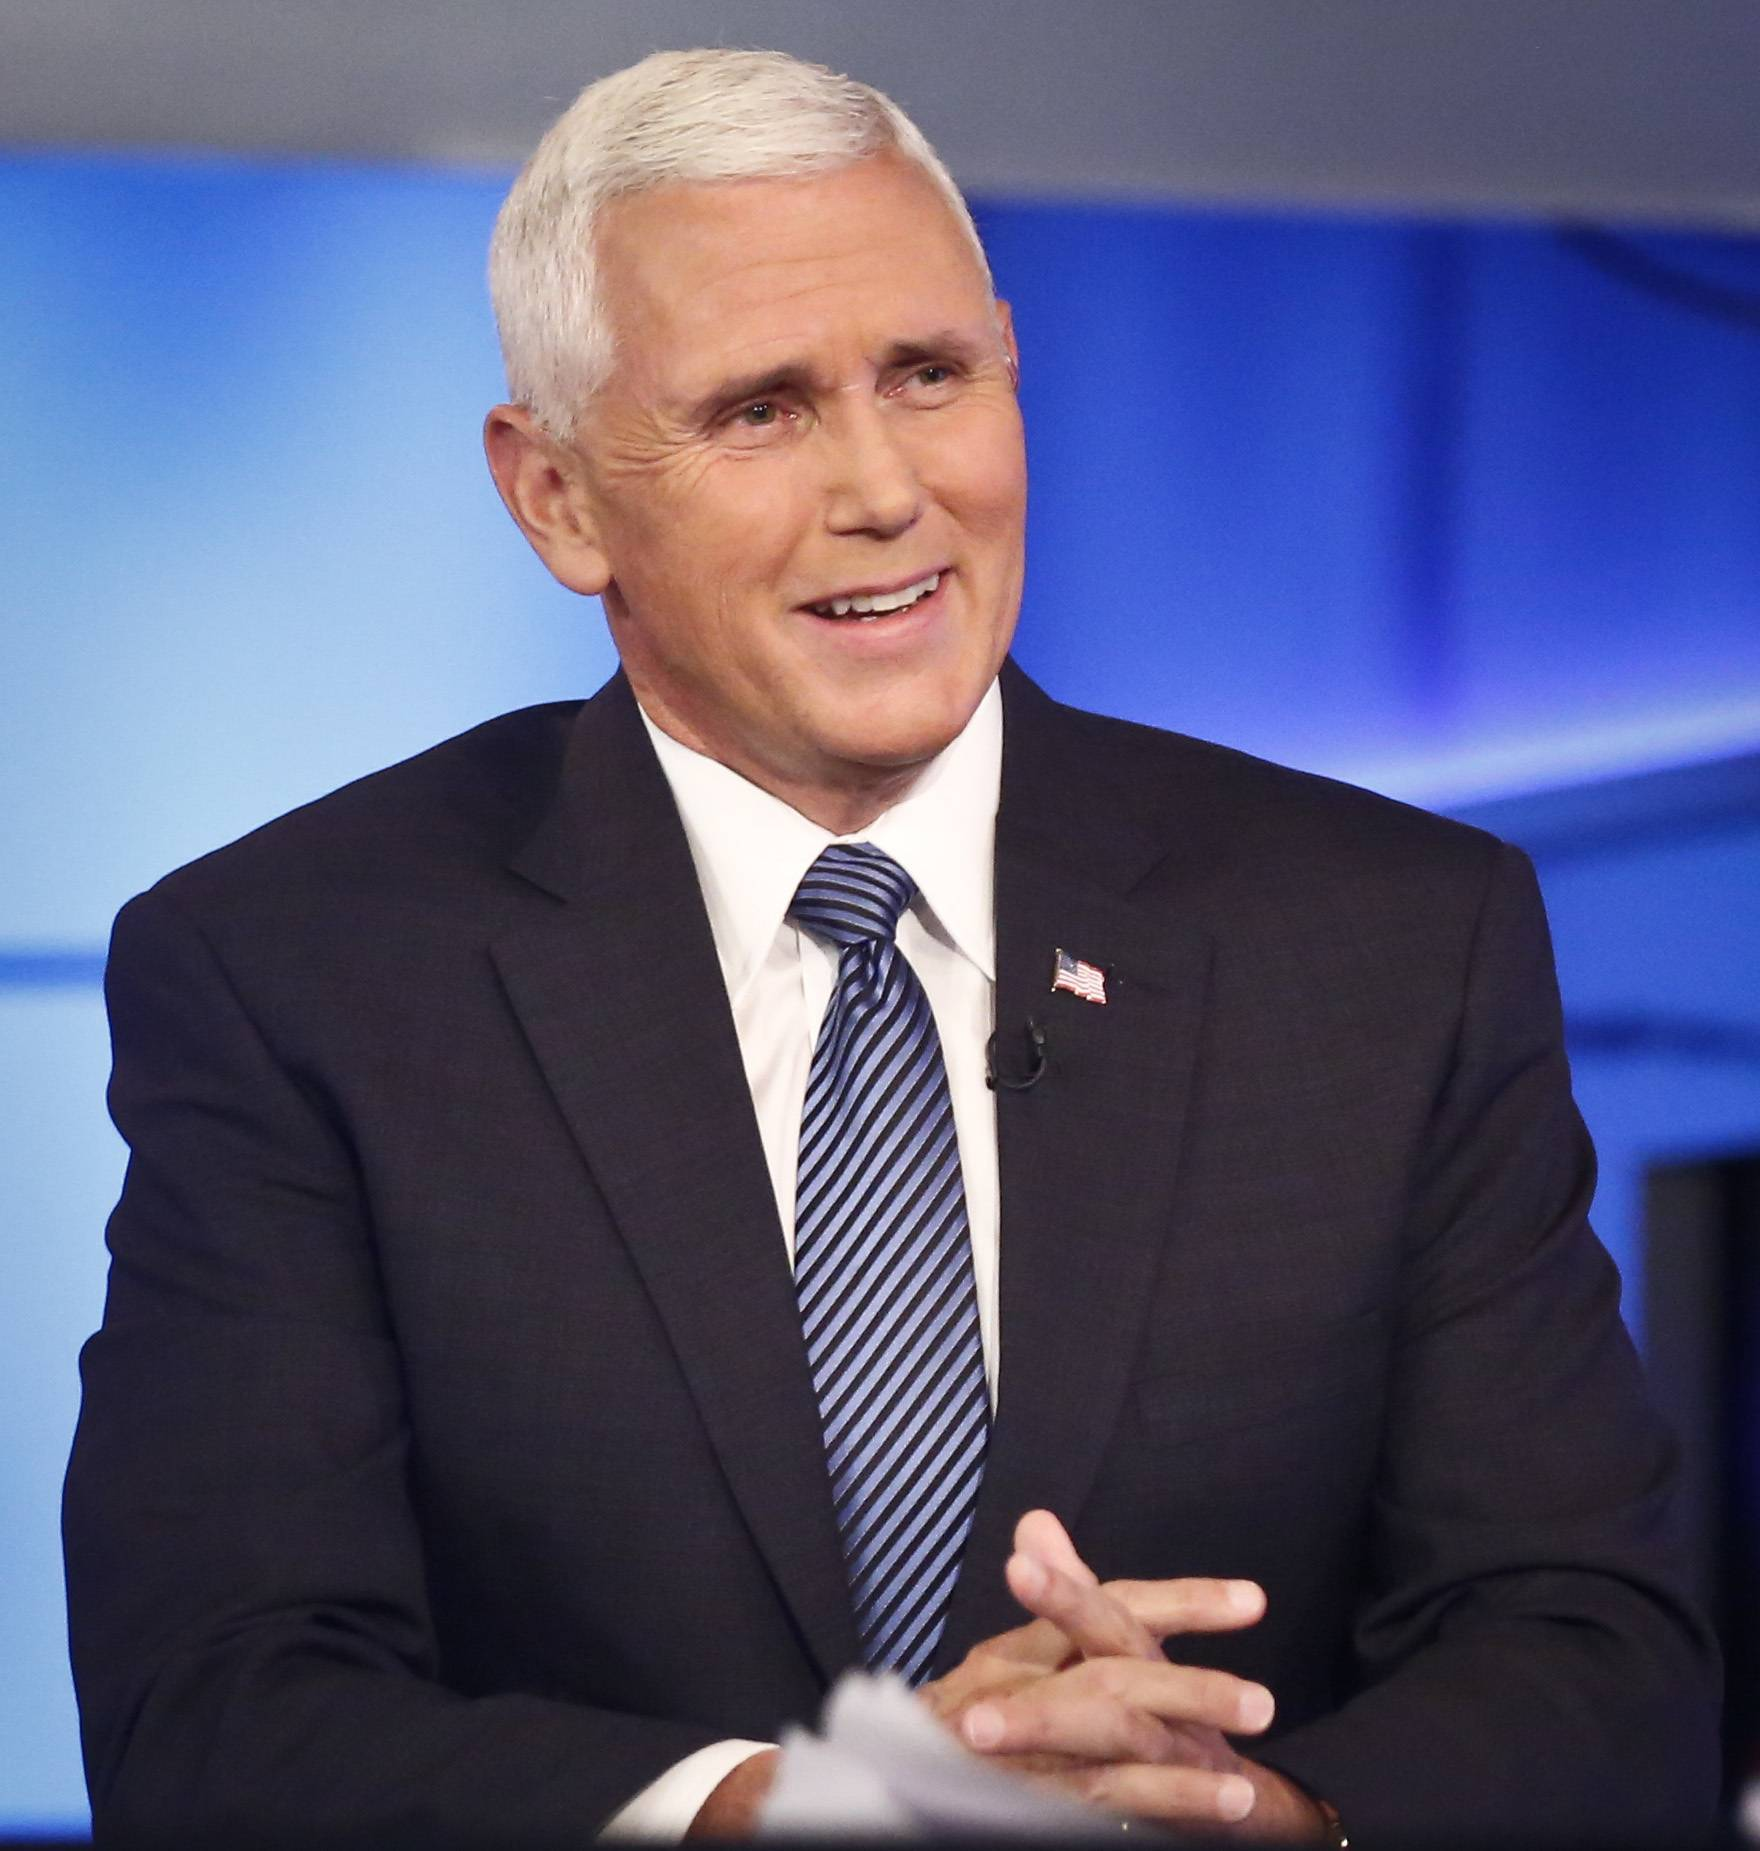 Mike Pence op-ed: Trump White House phenomenally successful